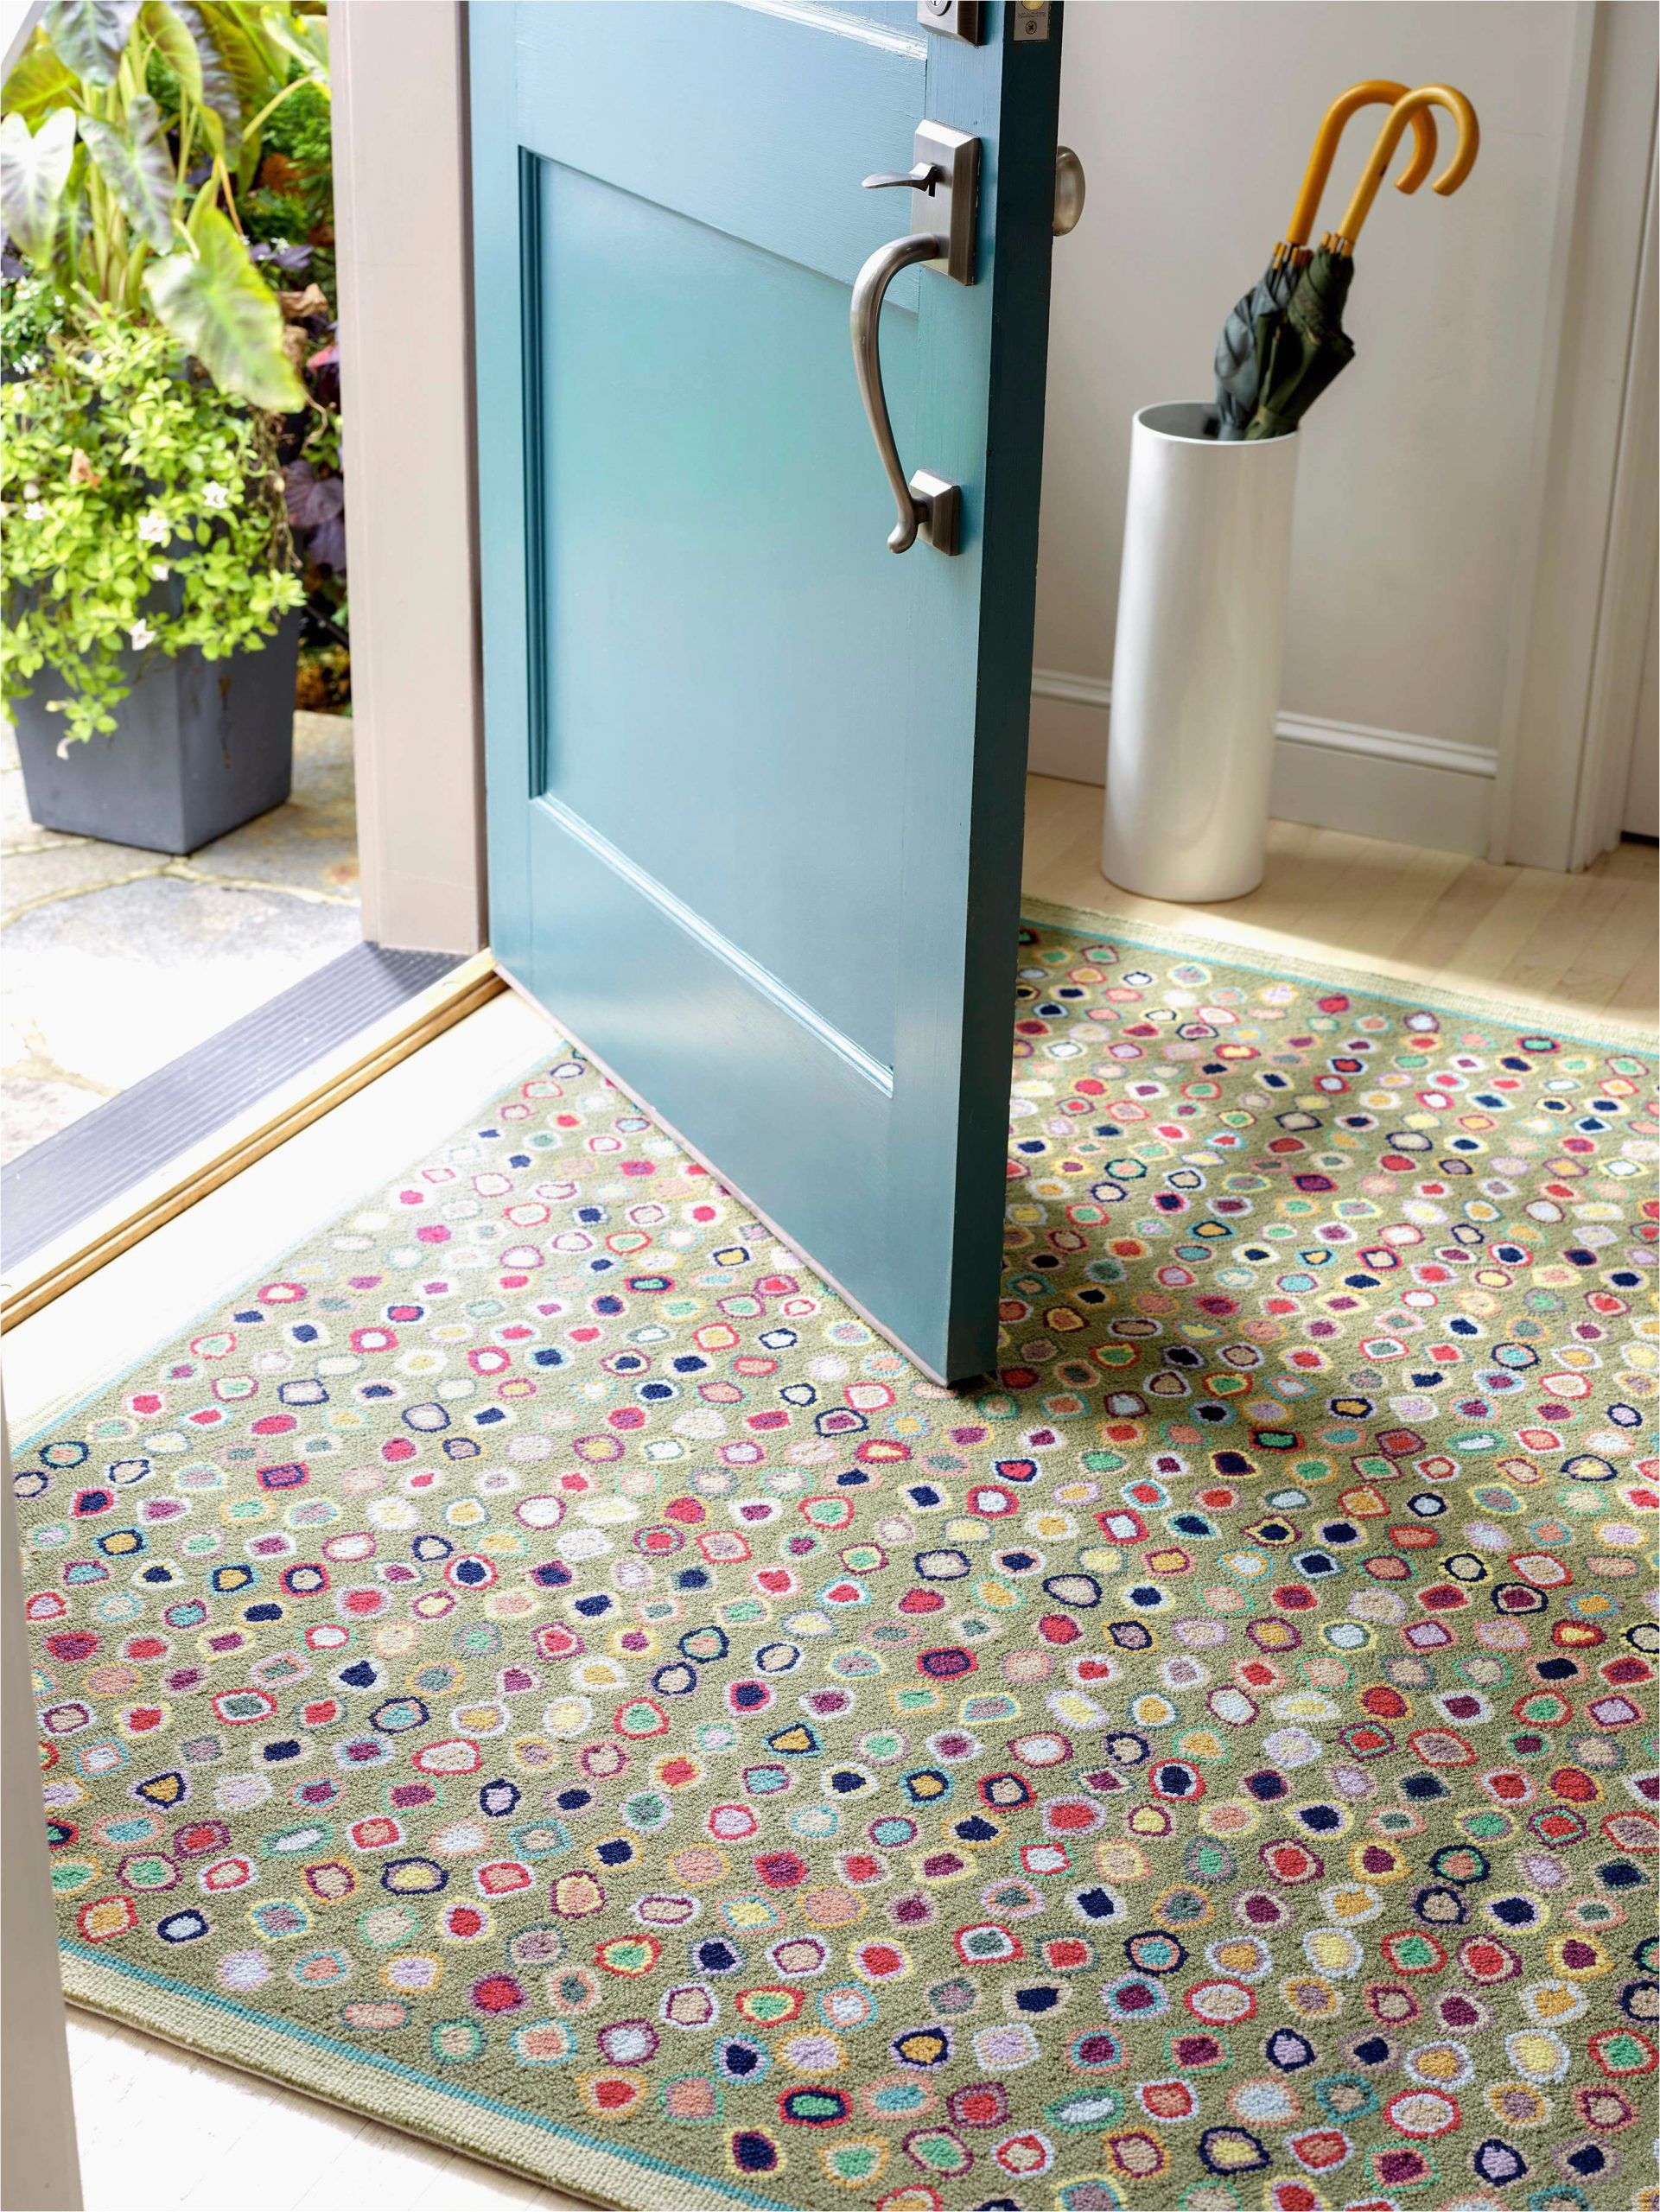 Custom Size Bath Rugs How to Choose the Right Rug for the Mudroom